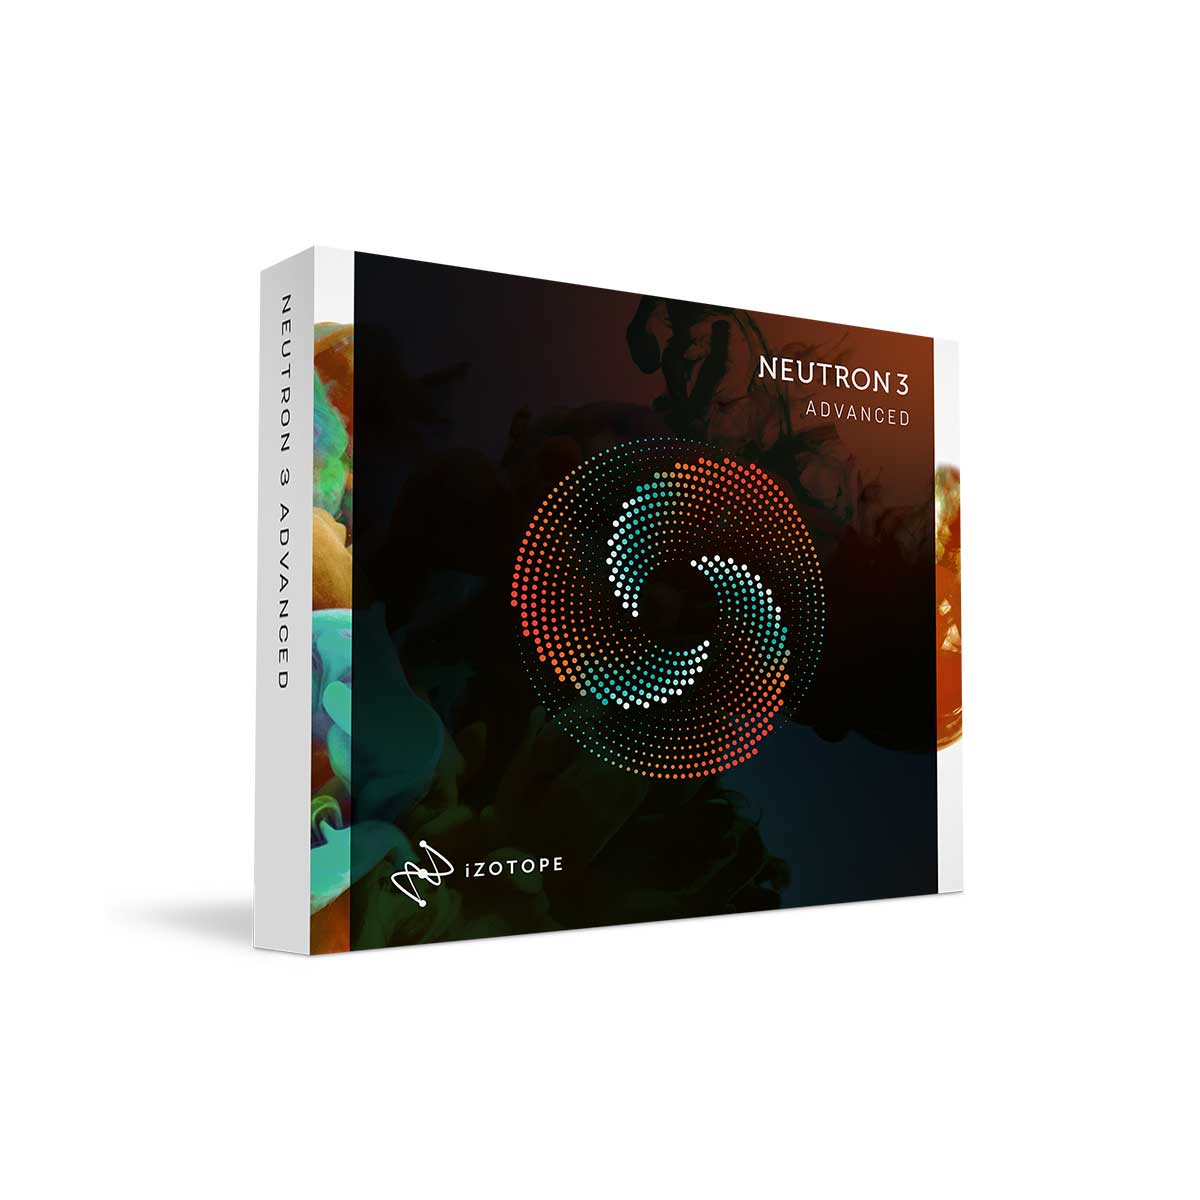 Izotope Neutron 3 Advanced Mixing Software